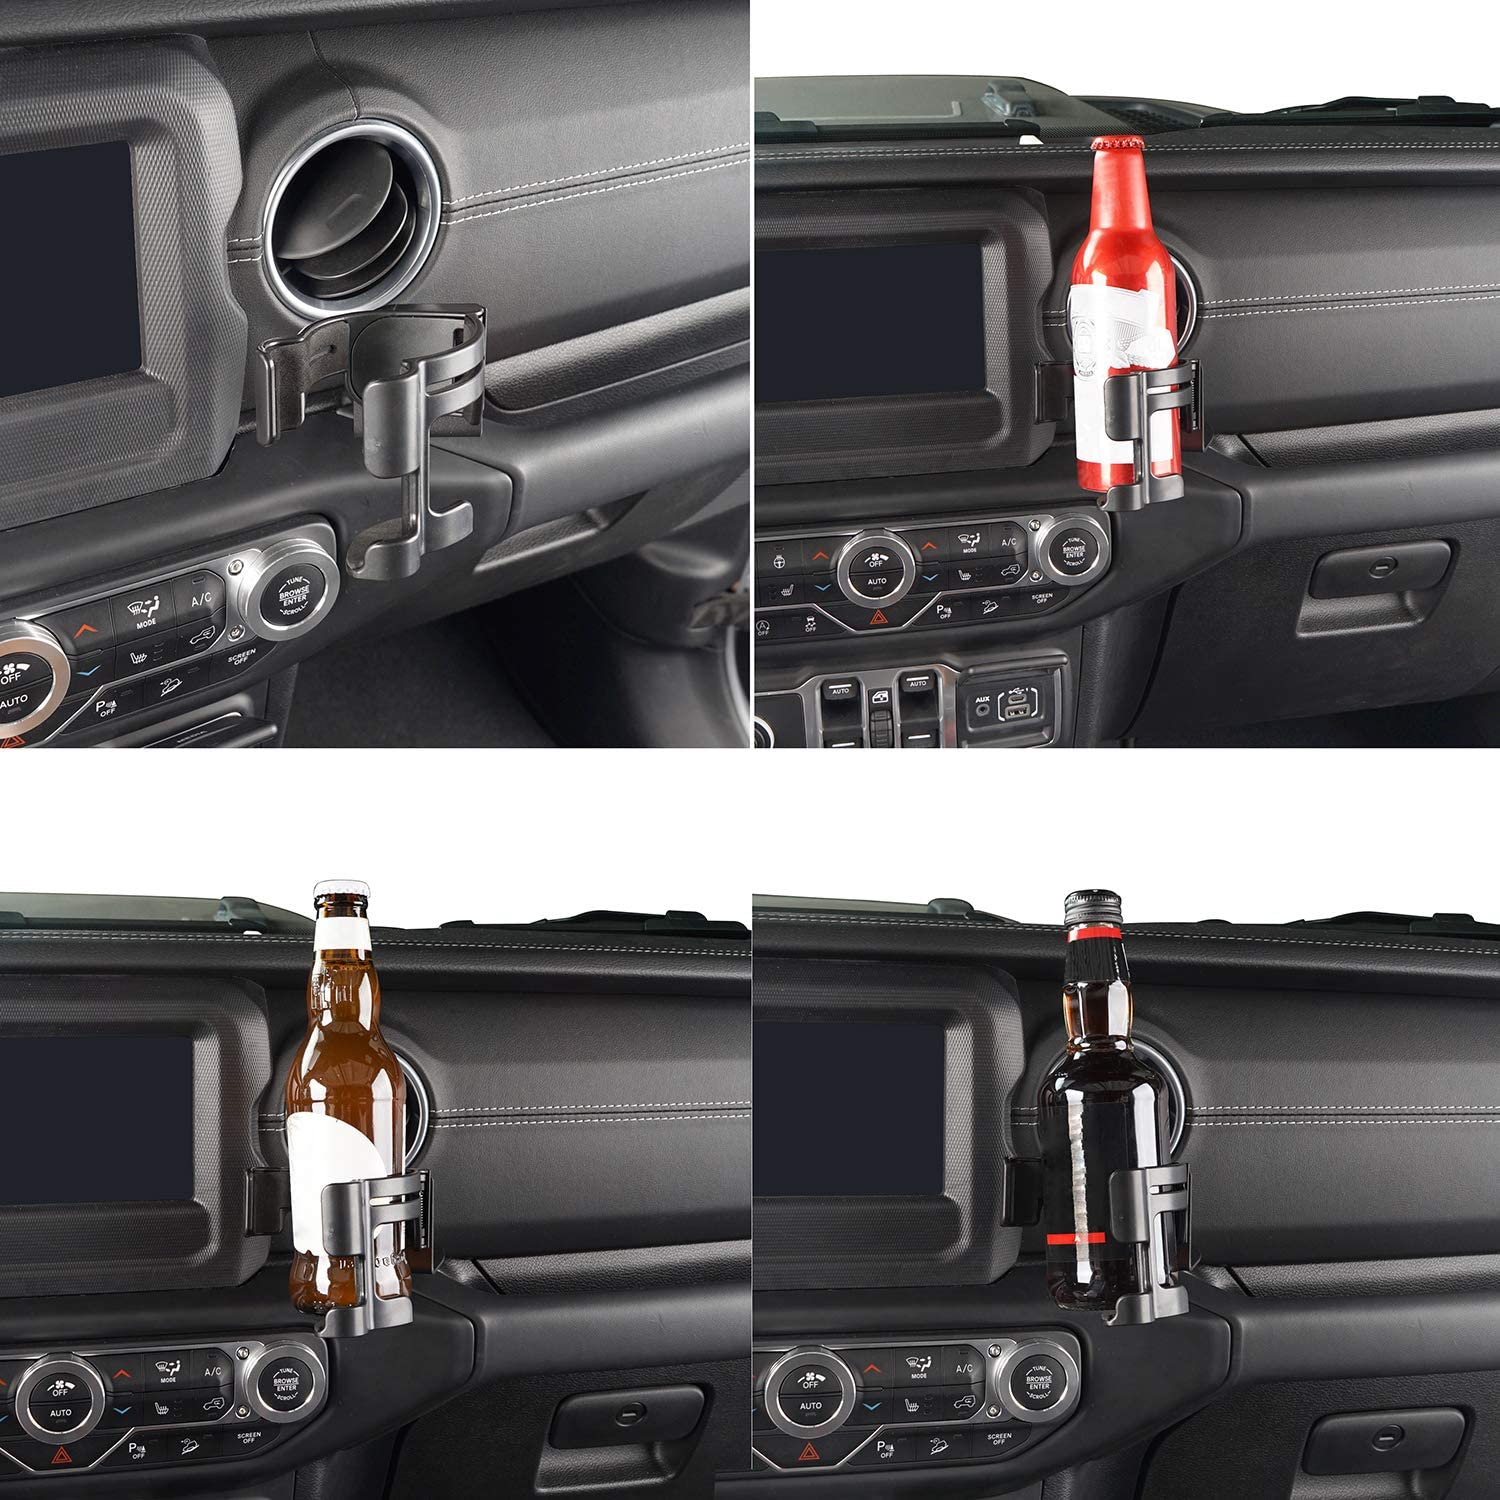 18-20 Jeep JL Phone Support Drink Cup Holder Bolt-on Stand Bracket Organizer for Jeep JL Wrangler Sport Sports Sahara Rubicon Moab